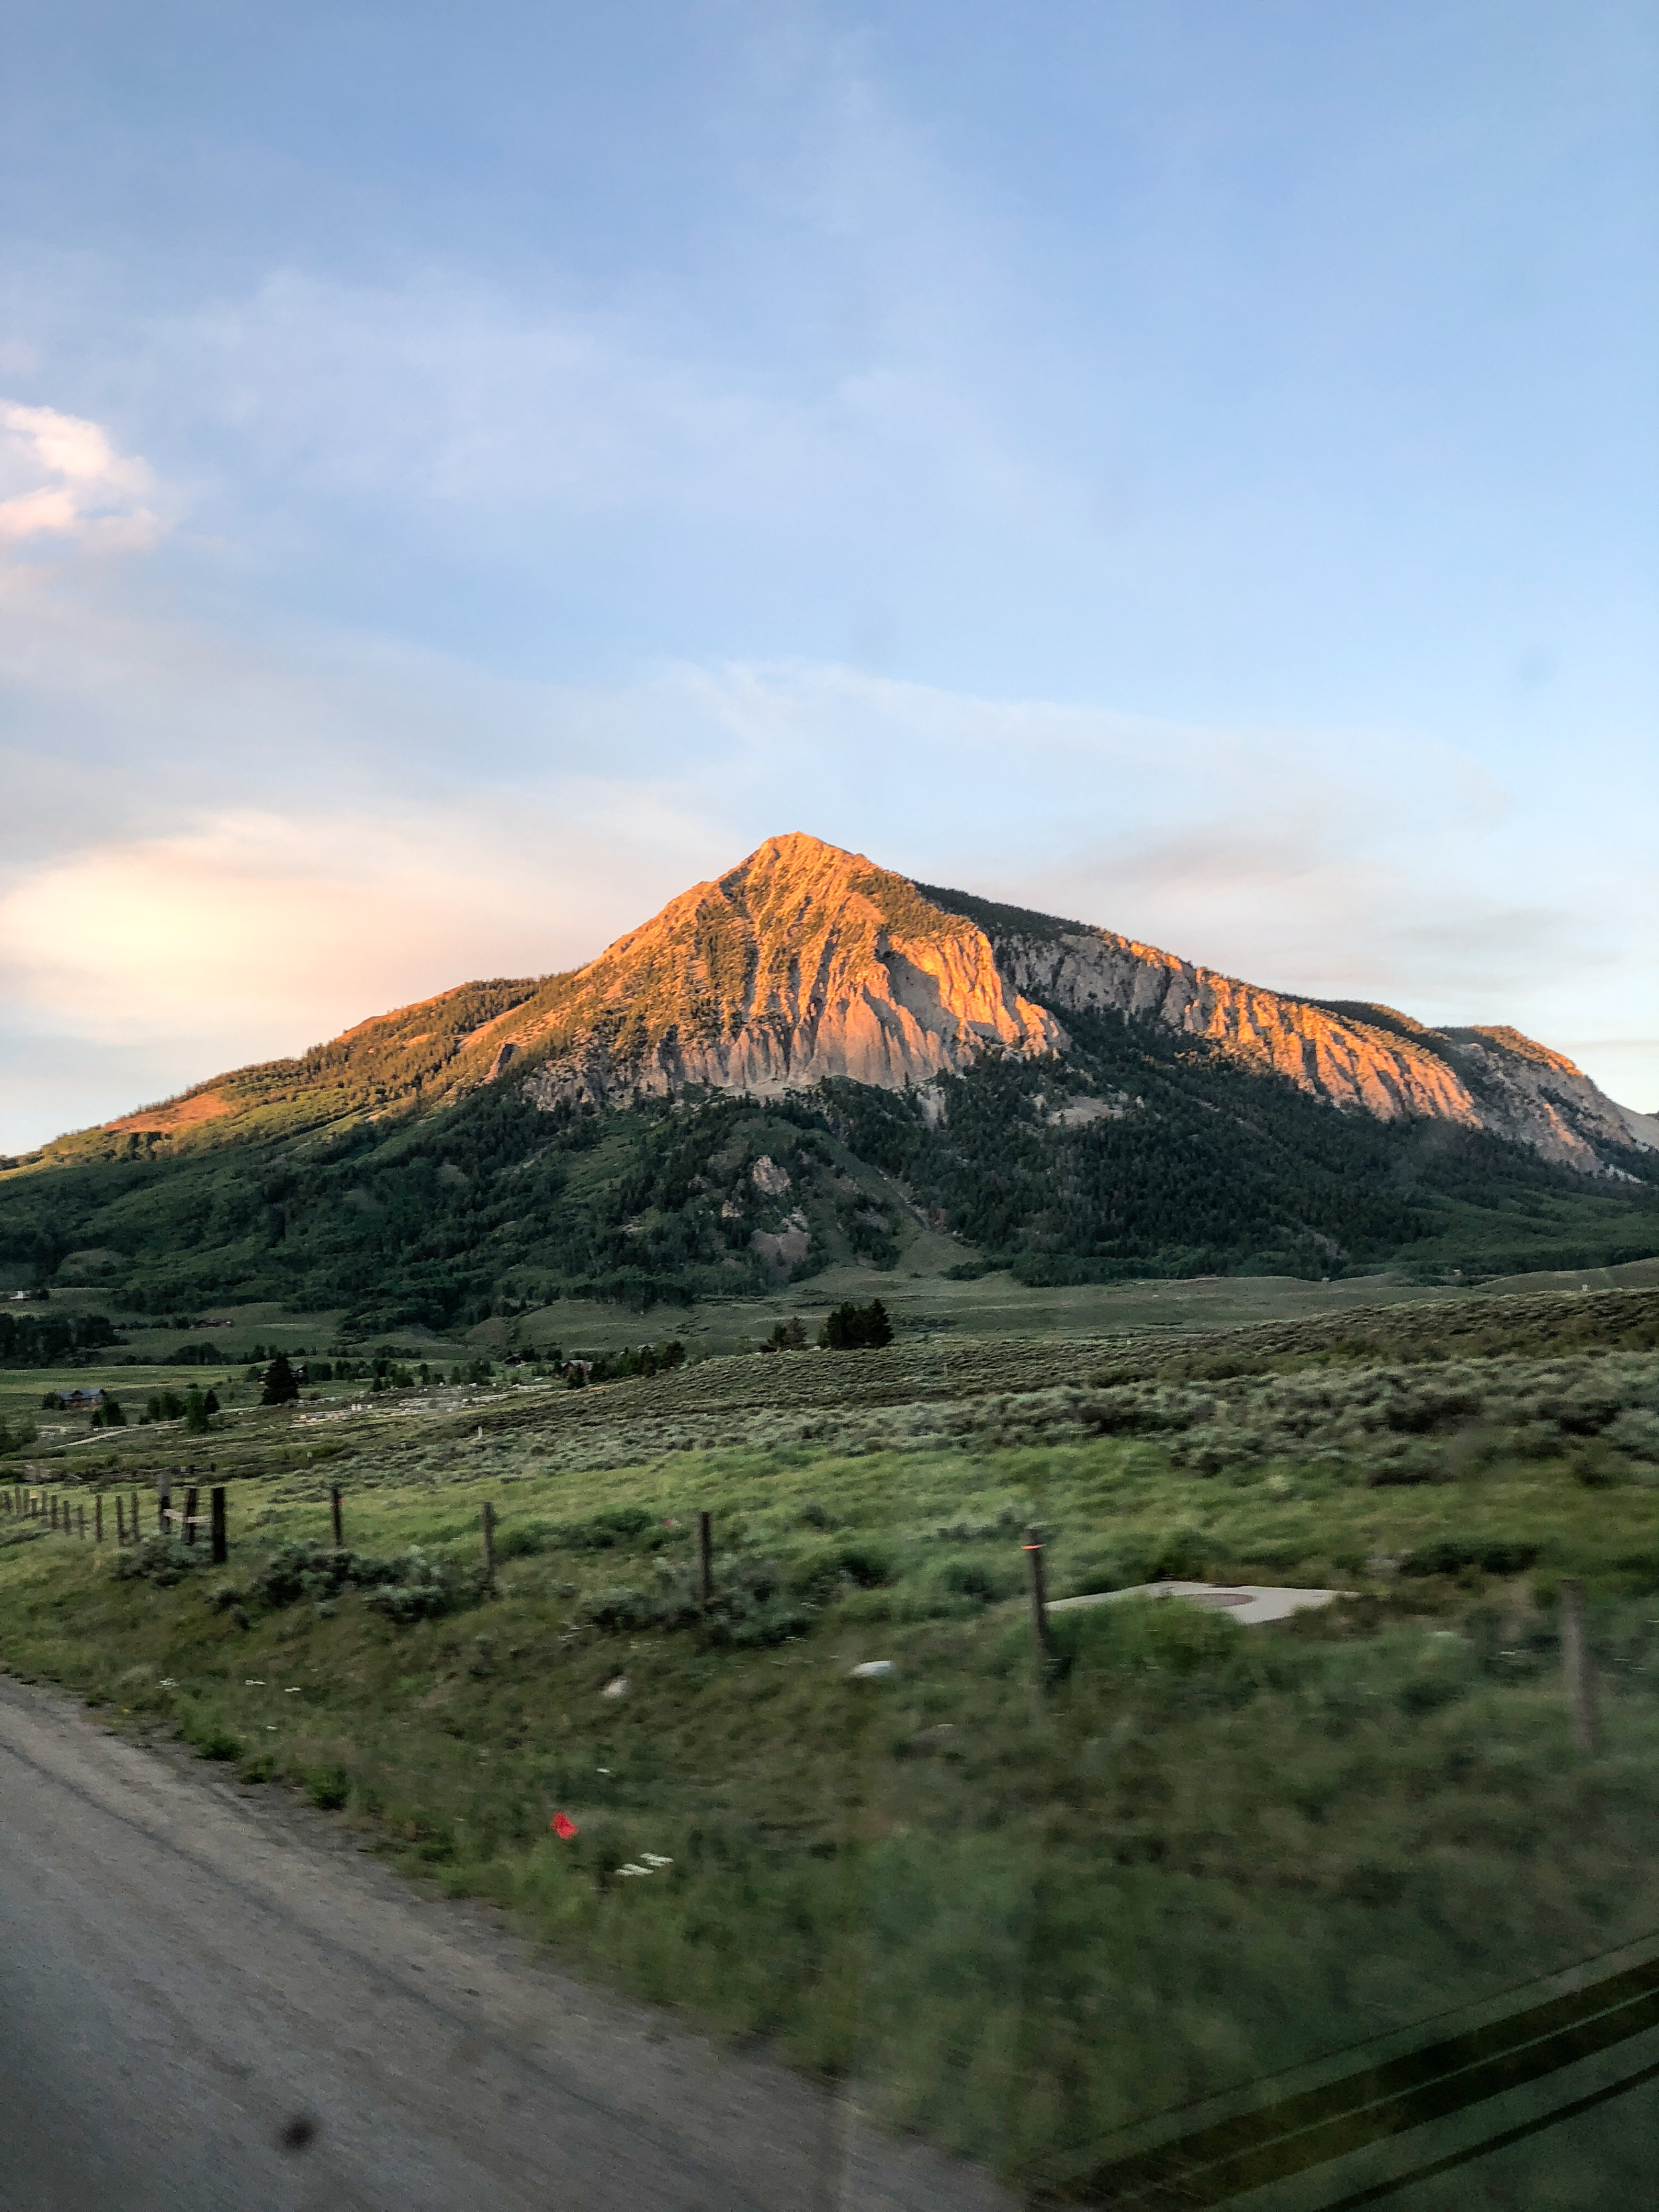 7:15PM - Crested Butte! I am here to work the Big Mountain Endurorace. Helping out with registration and check-in while meeting the pros and of course checking out the best that Yeti Cycleshas to offer.